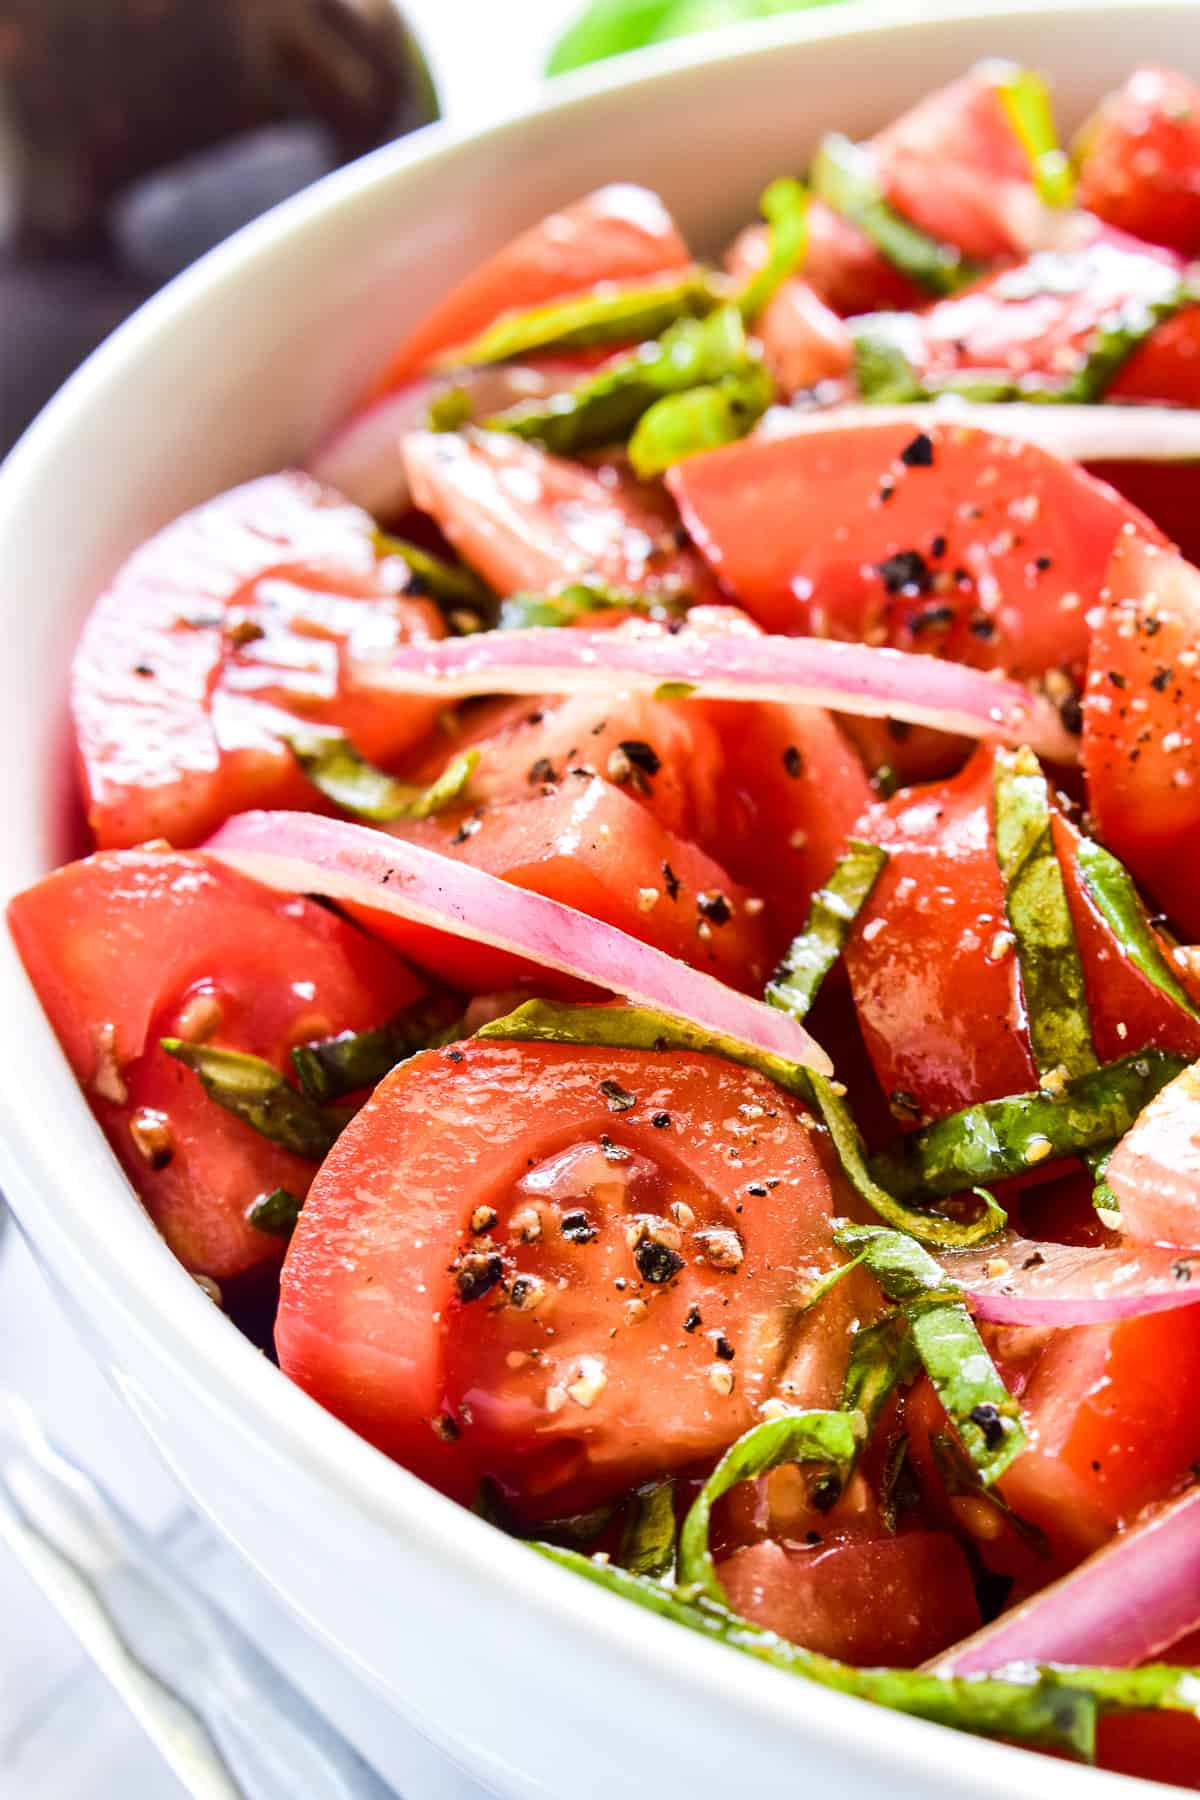 Closeup of Tomato Salad in a bowl